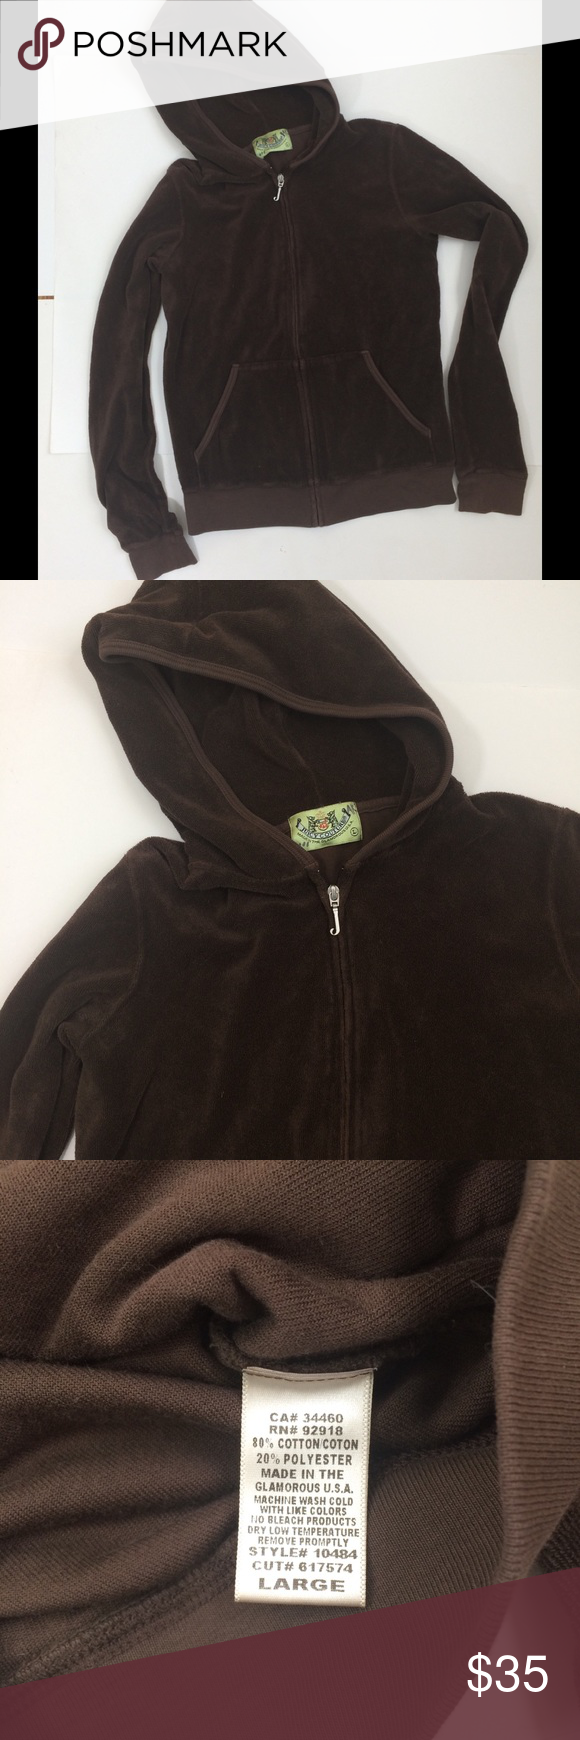 Listing juicy couture velour hoodie couture tops juicy couture